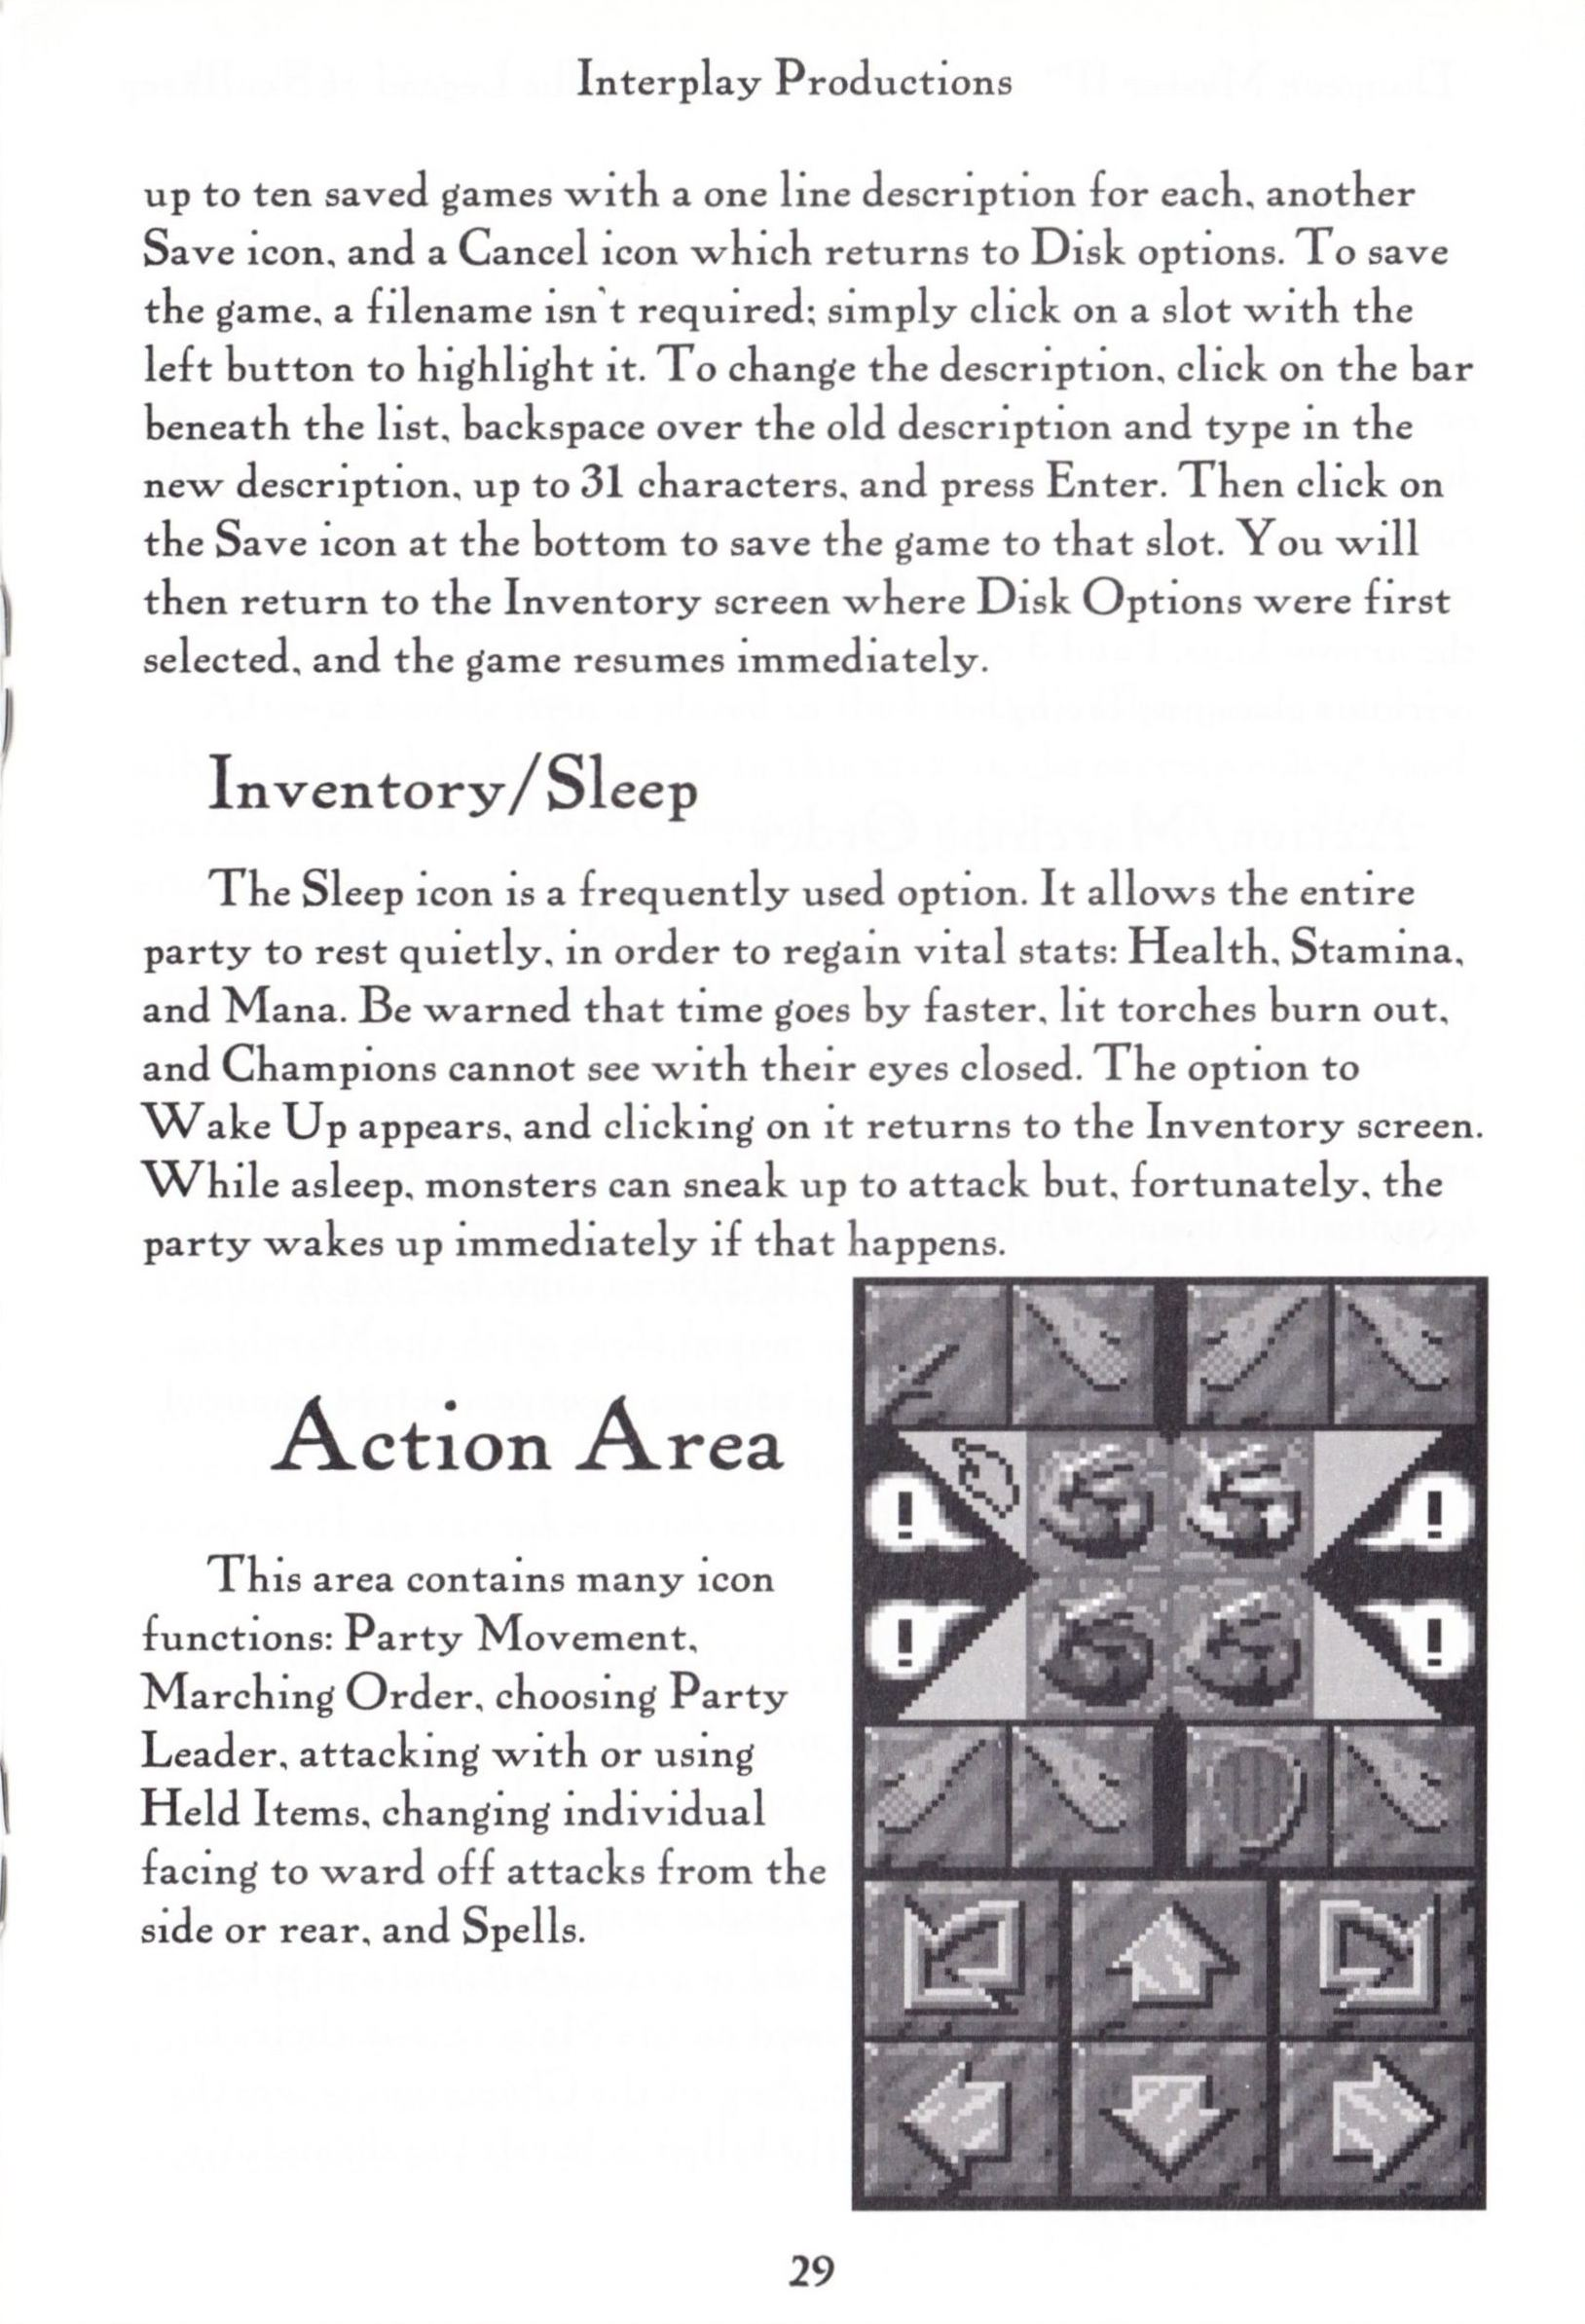 Game - Dungeon Master II - US - PC - Big Box - Manual - Page 031 - Scan